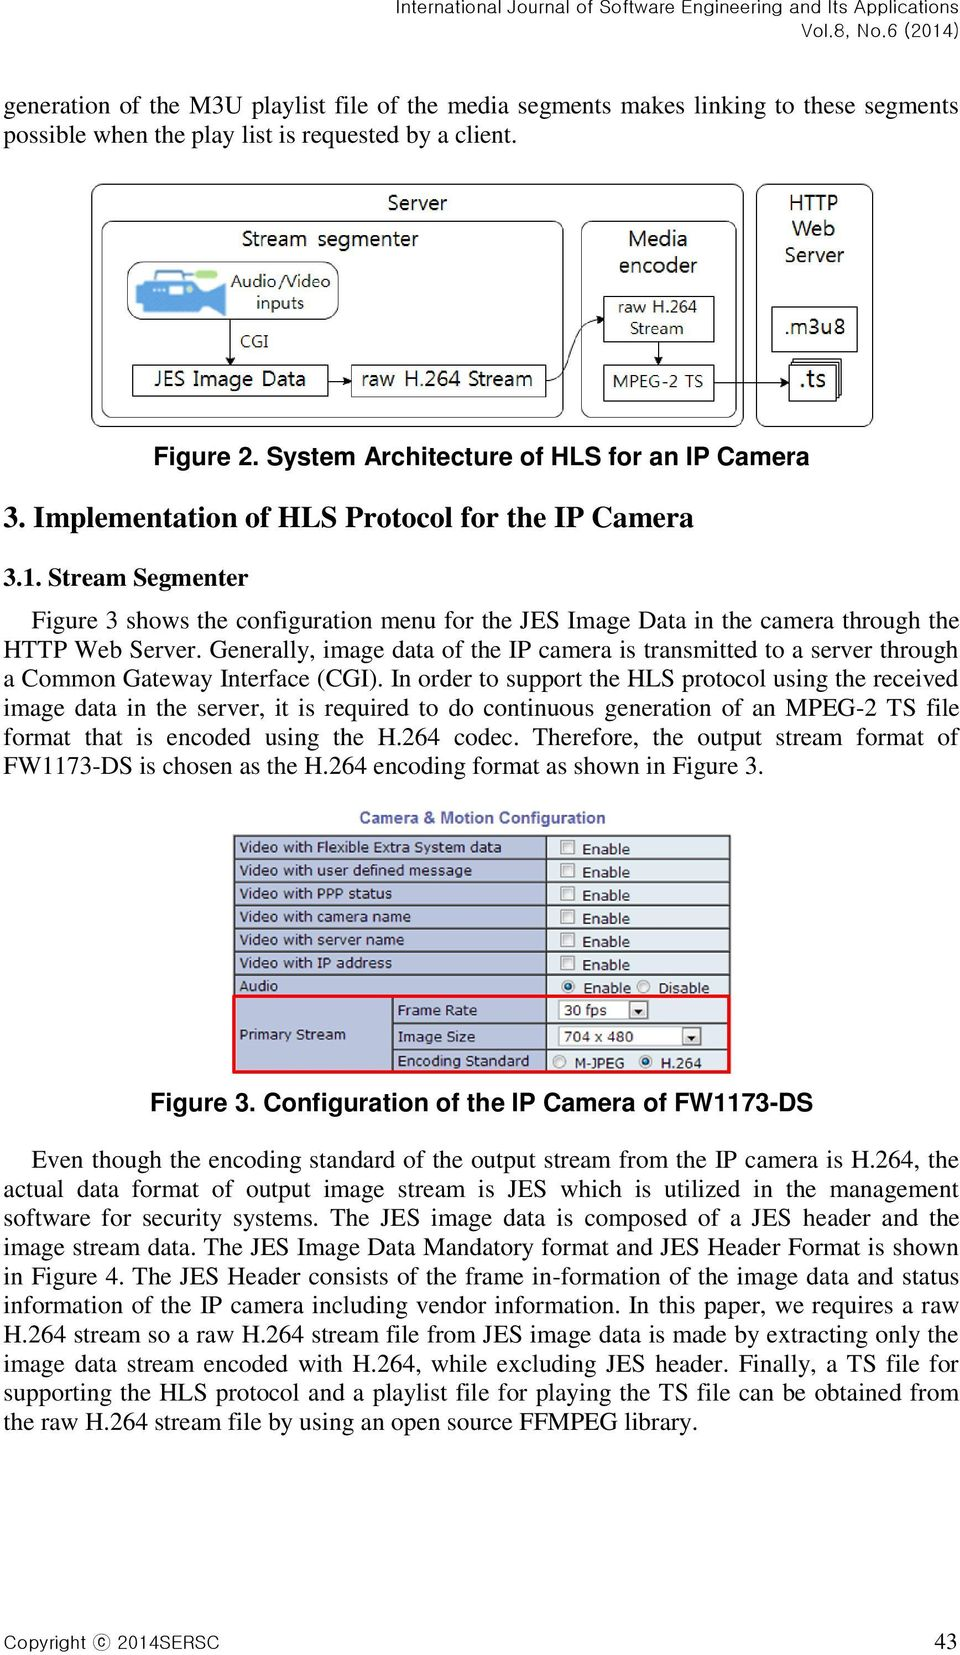 Implementation of HTTP Live Streaming for an IP Camera using an Open